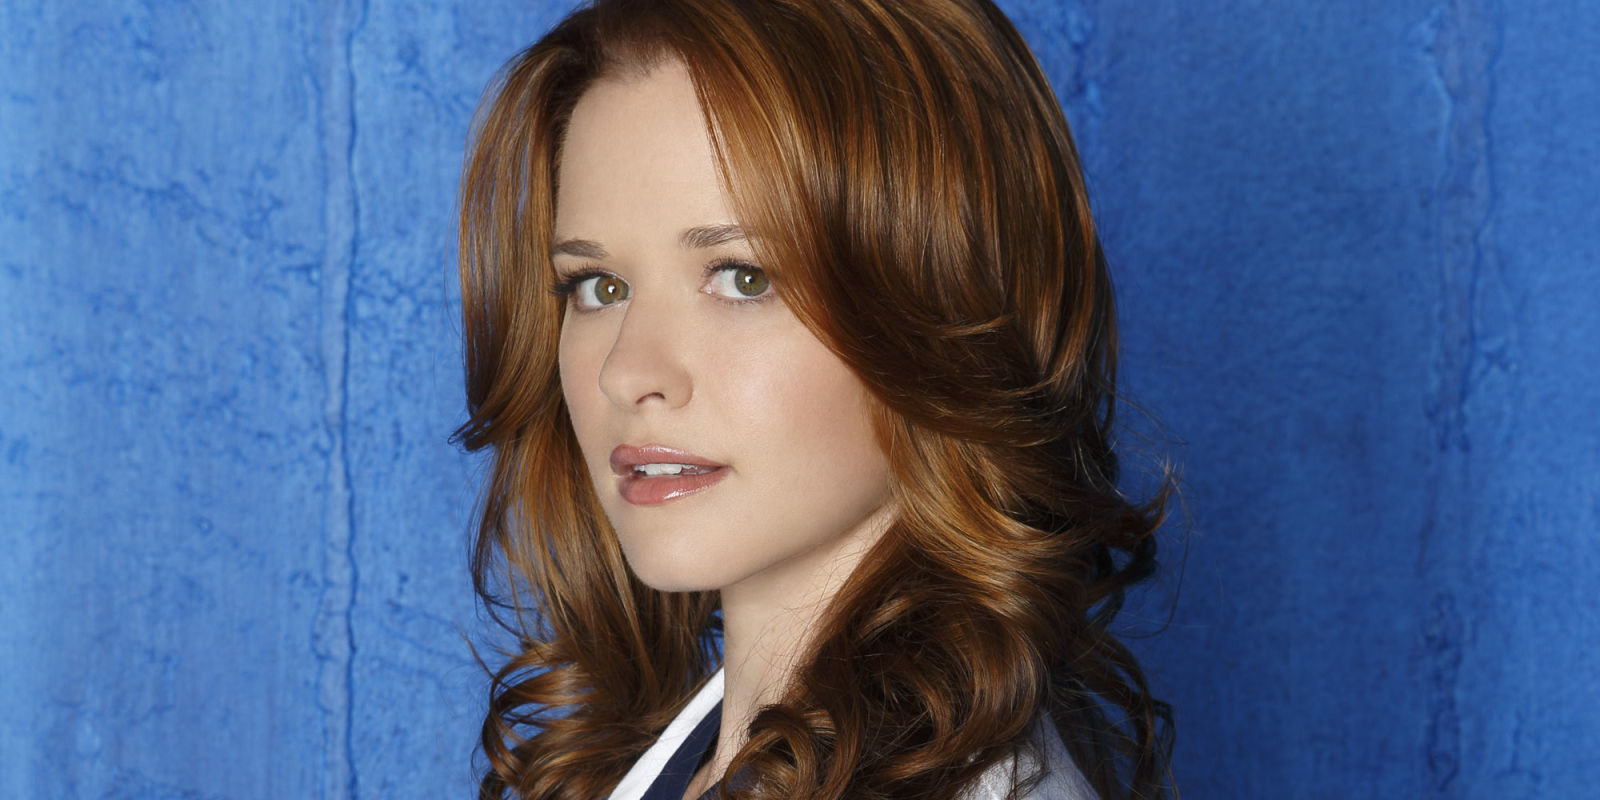 sarah drew instasarah drew husband, sarah drew wikipedia, sarah drew facts, sarah drew insta, sarah drew imdb, sarah drew maternity leave, sarah drew ellen pompeo, sarah drew instagram, sarah drew and jesse williams, sarah drew twitter, sarah drew, sarah drew private practice, sarah drew family, sarah drew grey's anatomy, sarah drew peter lanfer, sarah drew glee, sarah drew wiki, sarah drew height and weight, sarah drew facebook, sarah drew greys